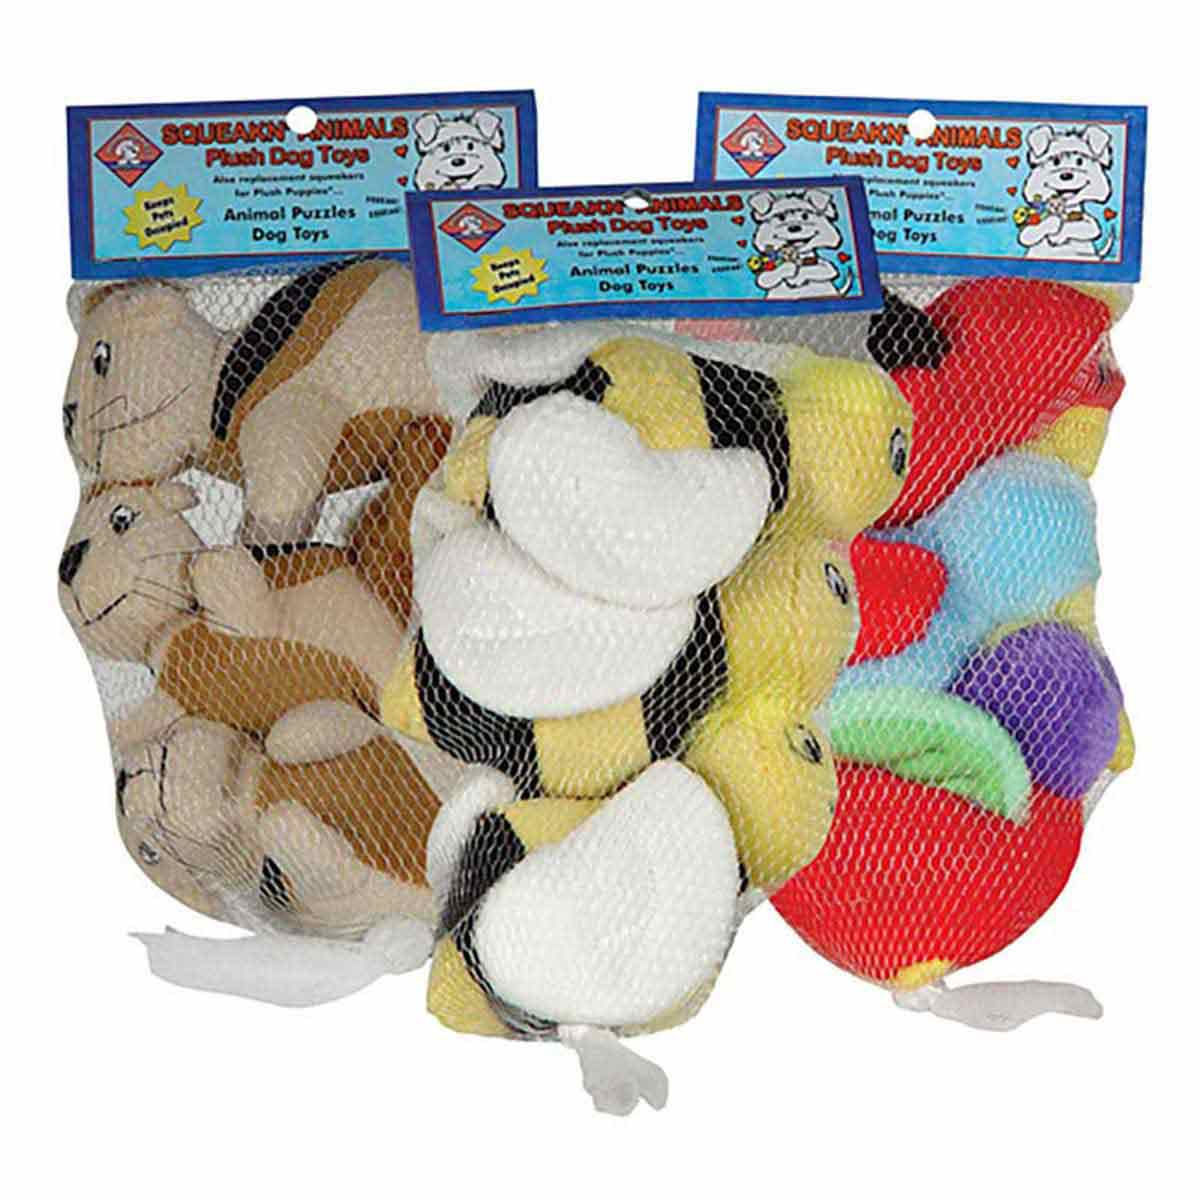 Outward Hound Squeakin' Animals Squirrel 3 Pack